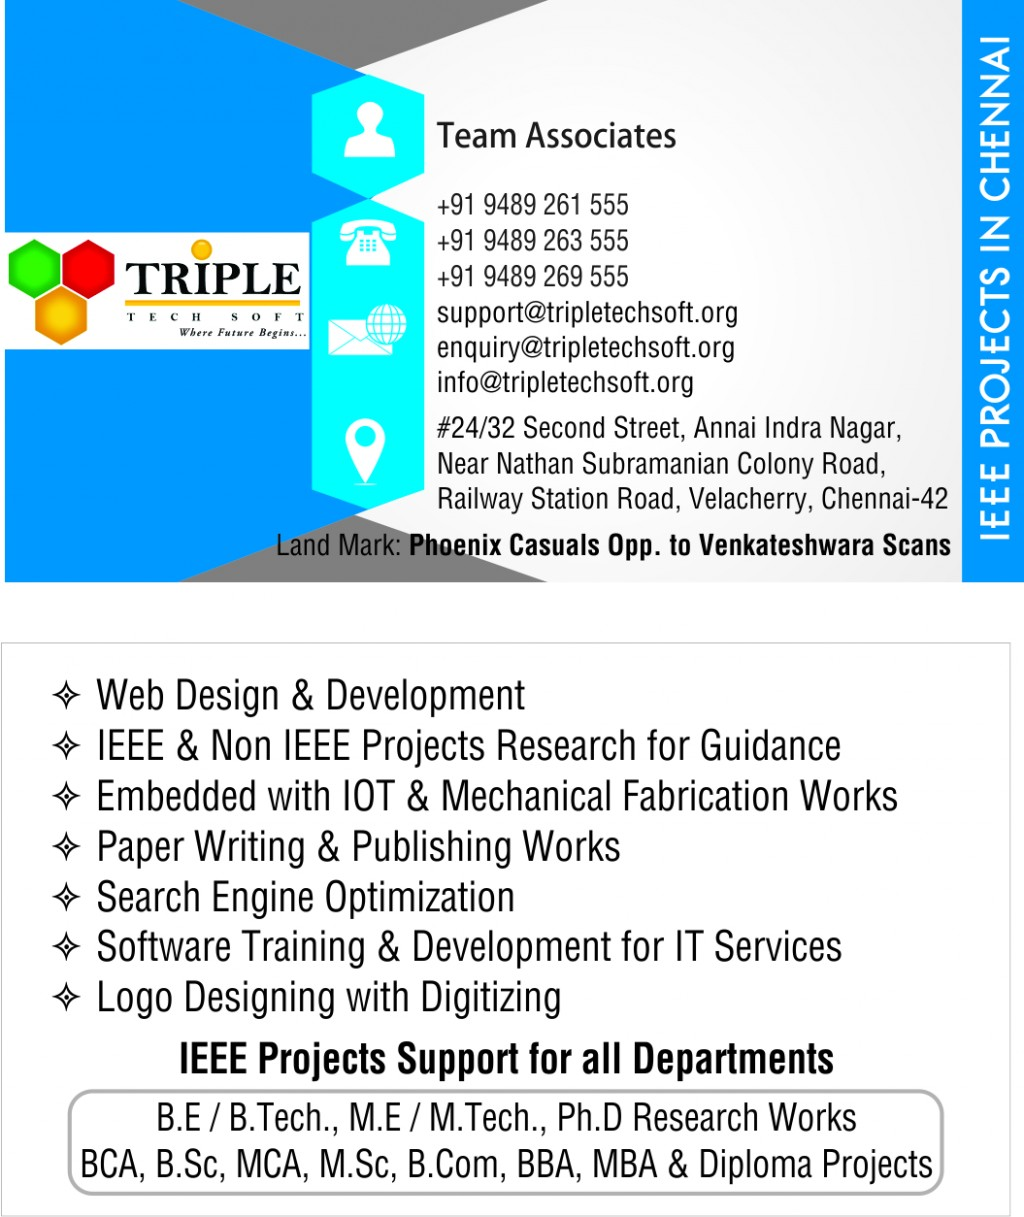 011 Research Paper Ieee Search Engine Imposing Optimization Large